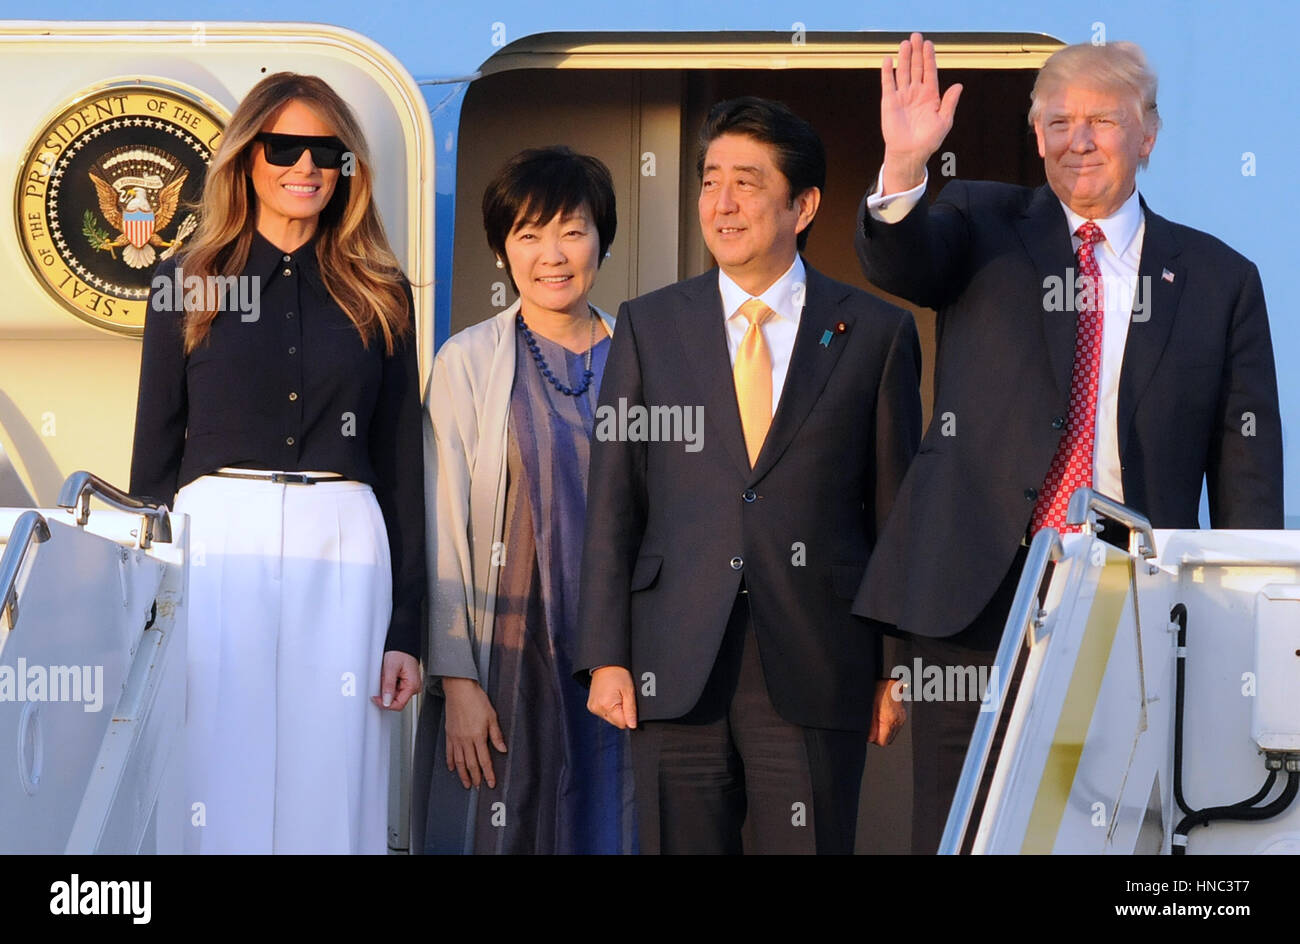 West Palm Beach, Florida, USA. 10th Feb, 2017. U.S. President Donald Trump (R) waves after arriving on Air Force - Stock Image